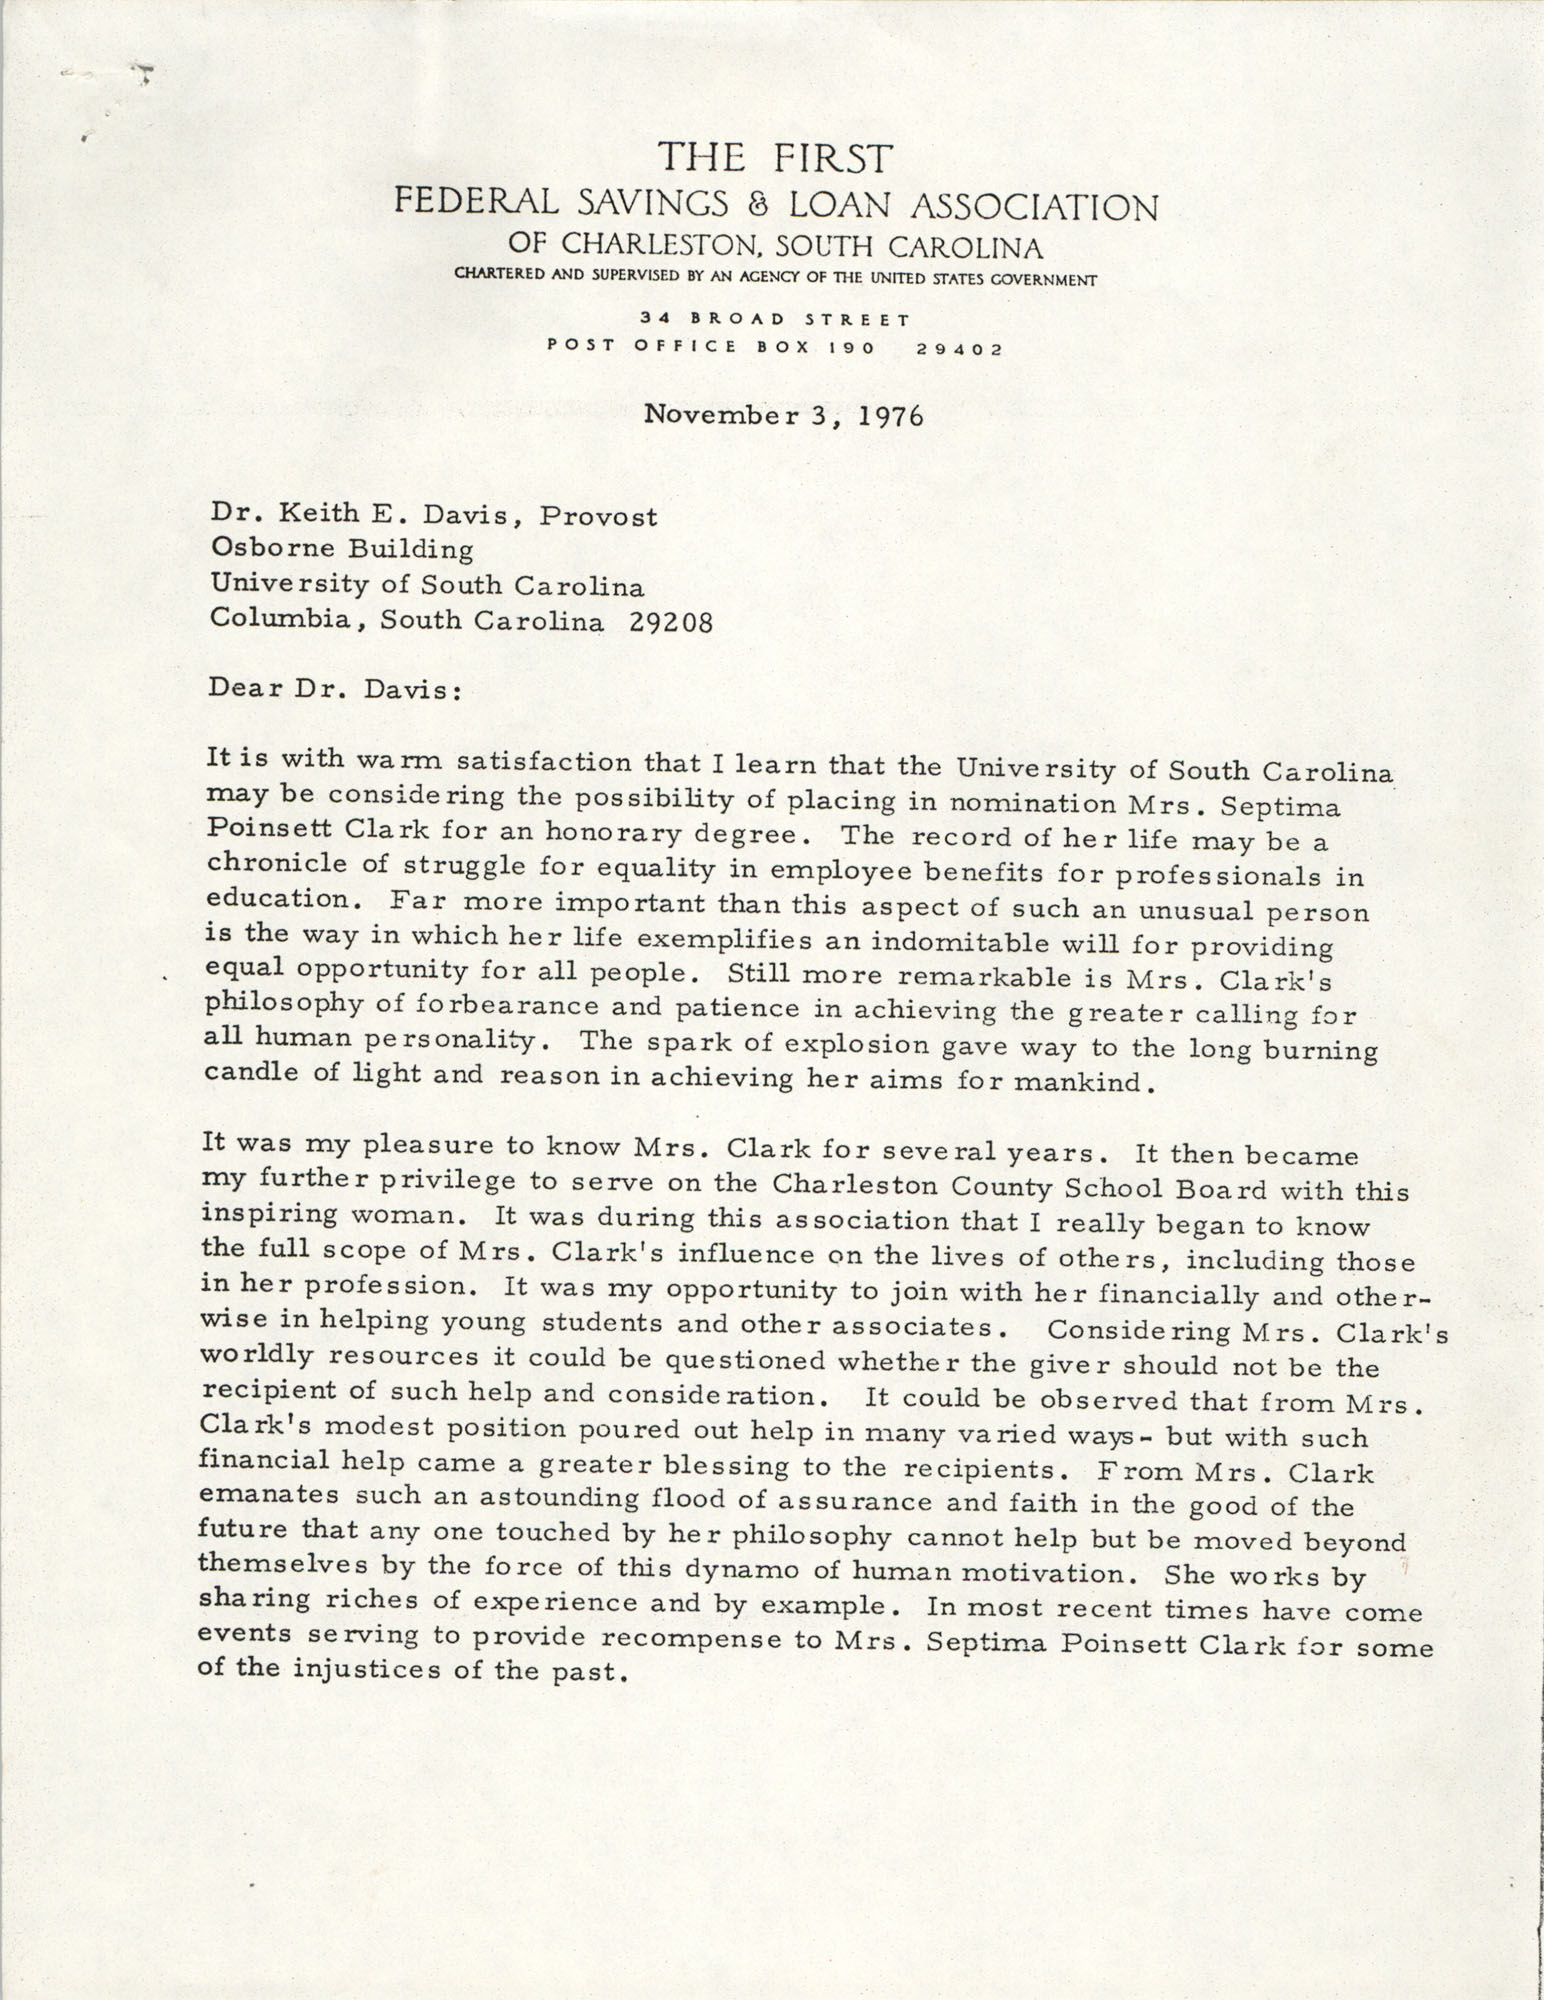 Letter from Howard F. Burky to Keith E. Davis, November 3, 1976